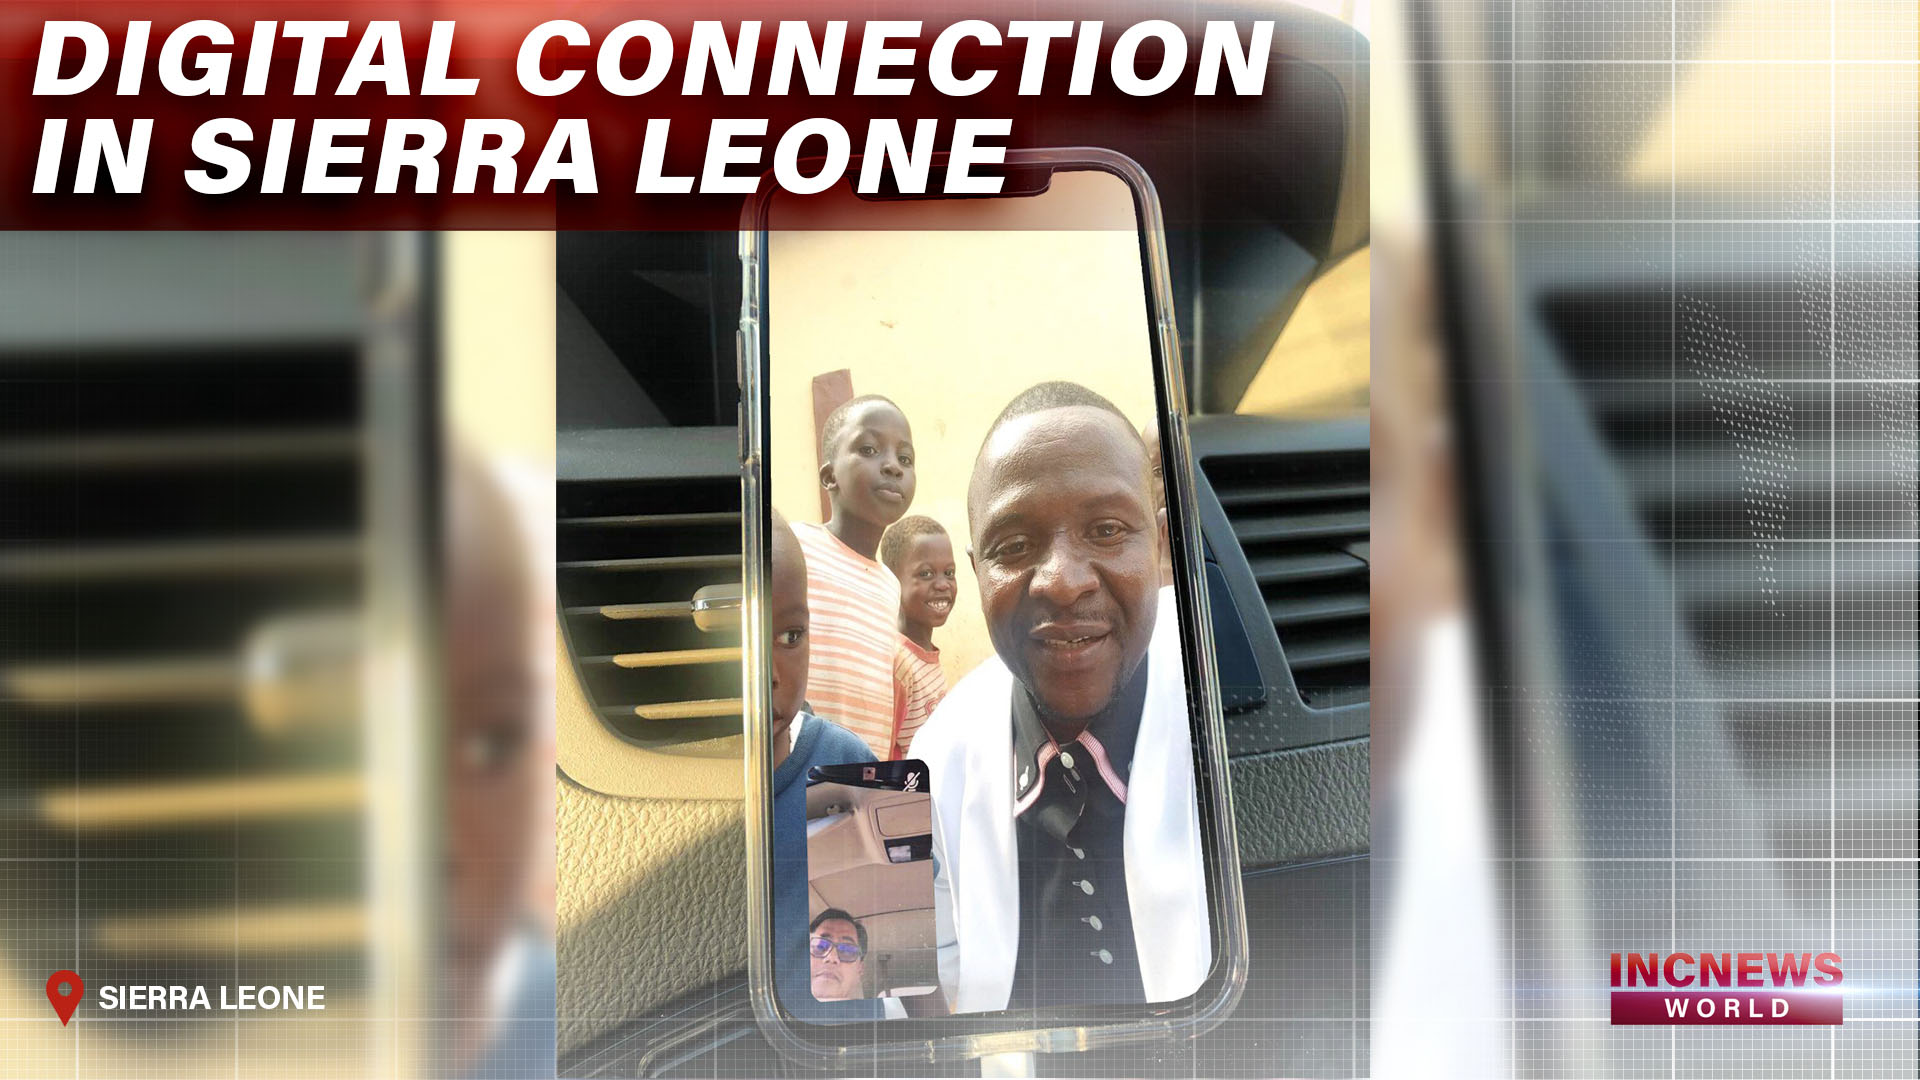 Digital Connection in Sierra Leone